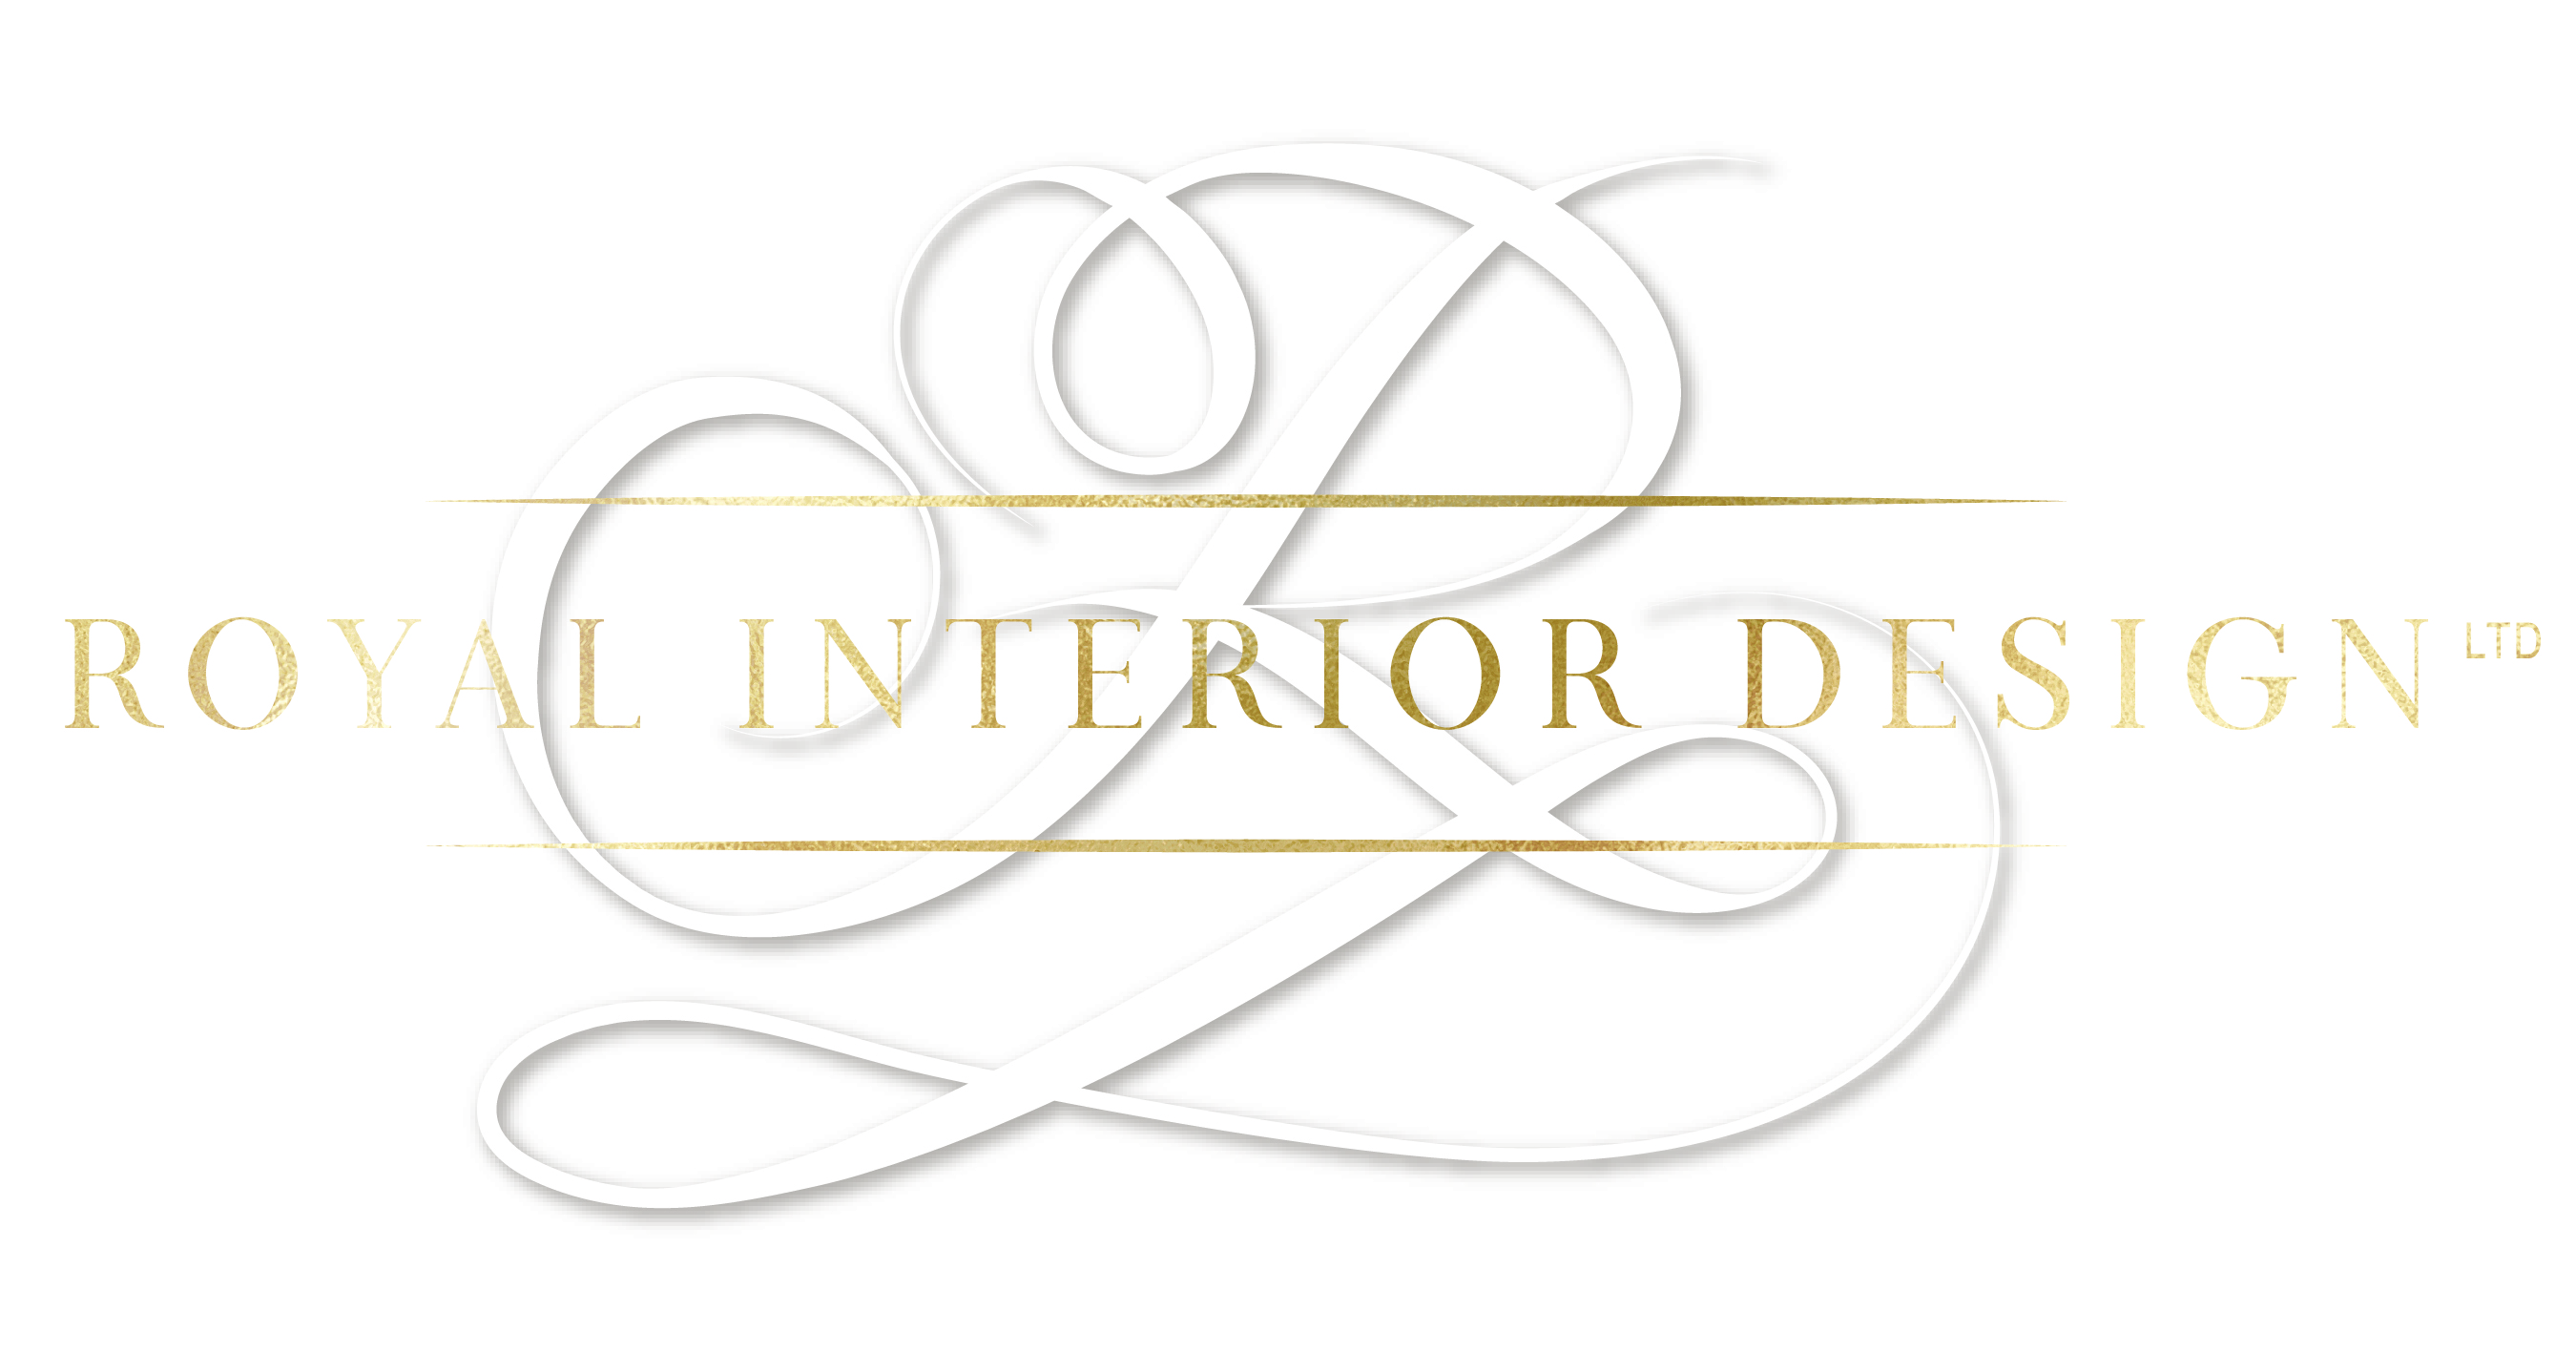 Royal Interior Design Ltd.